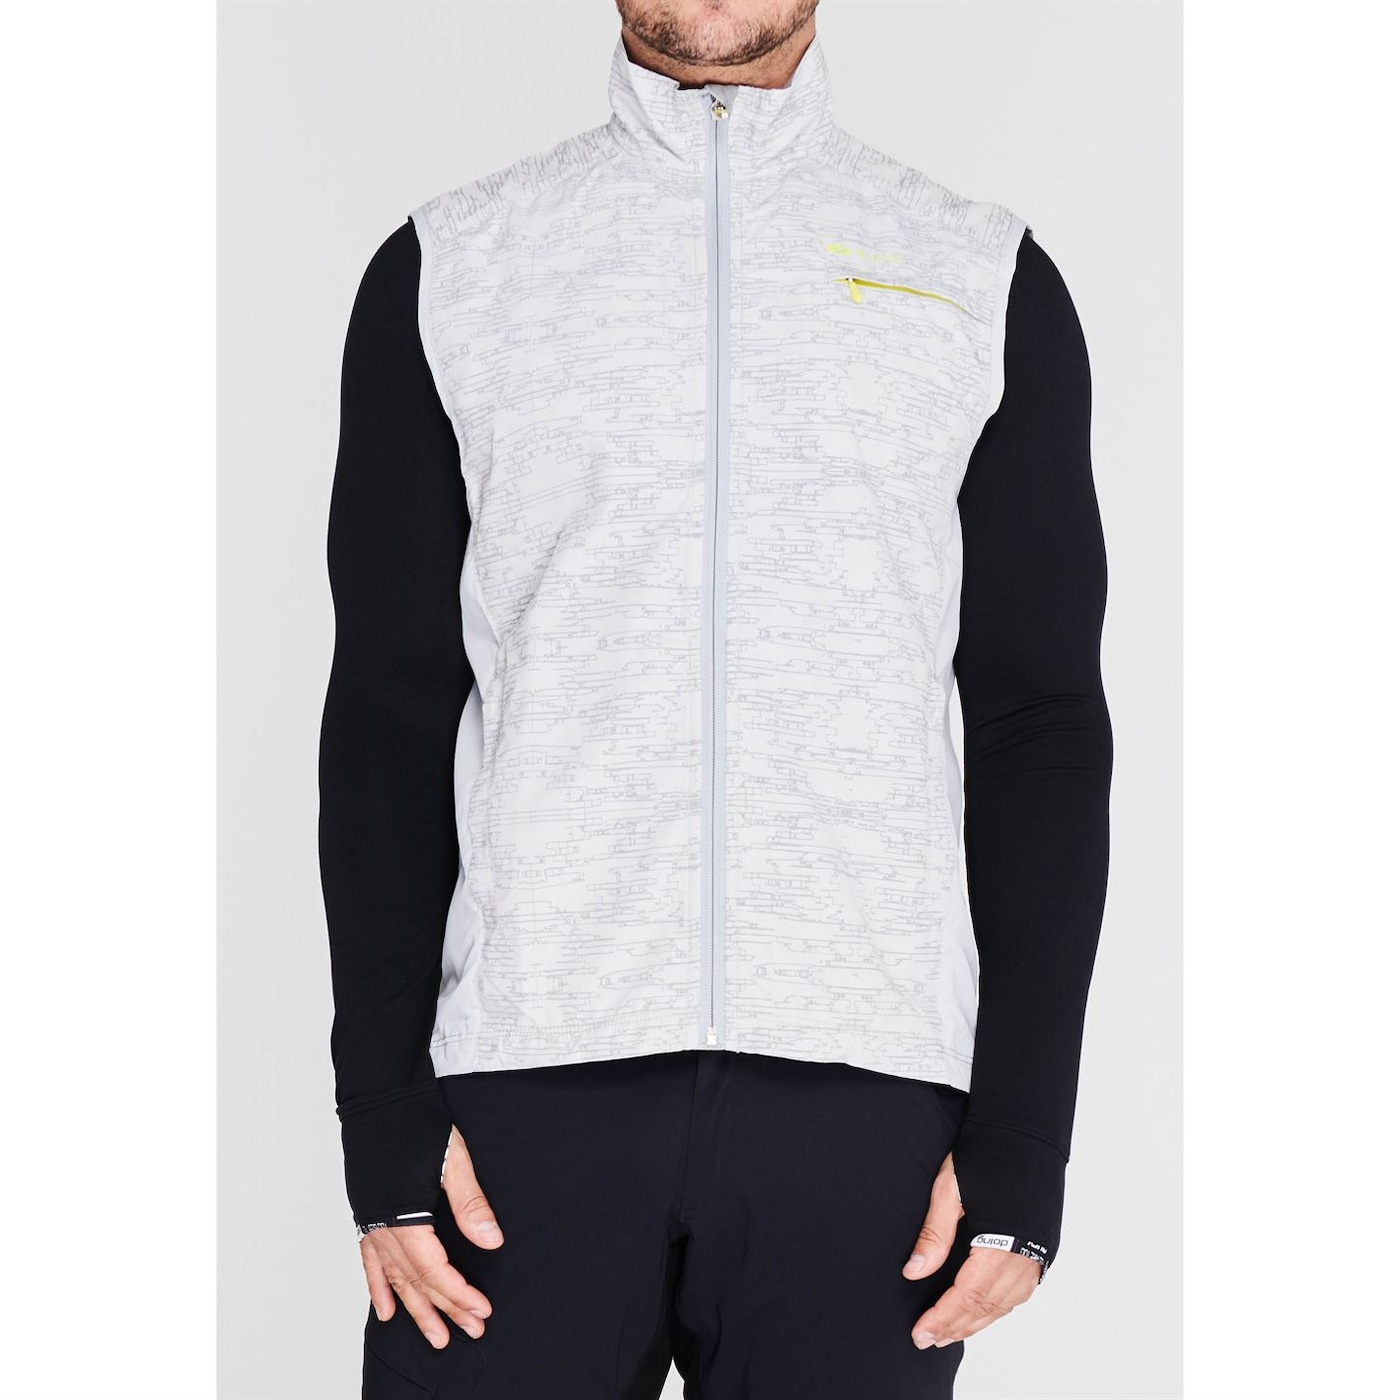 Sugoi Zap Run Vest Mens